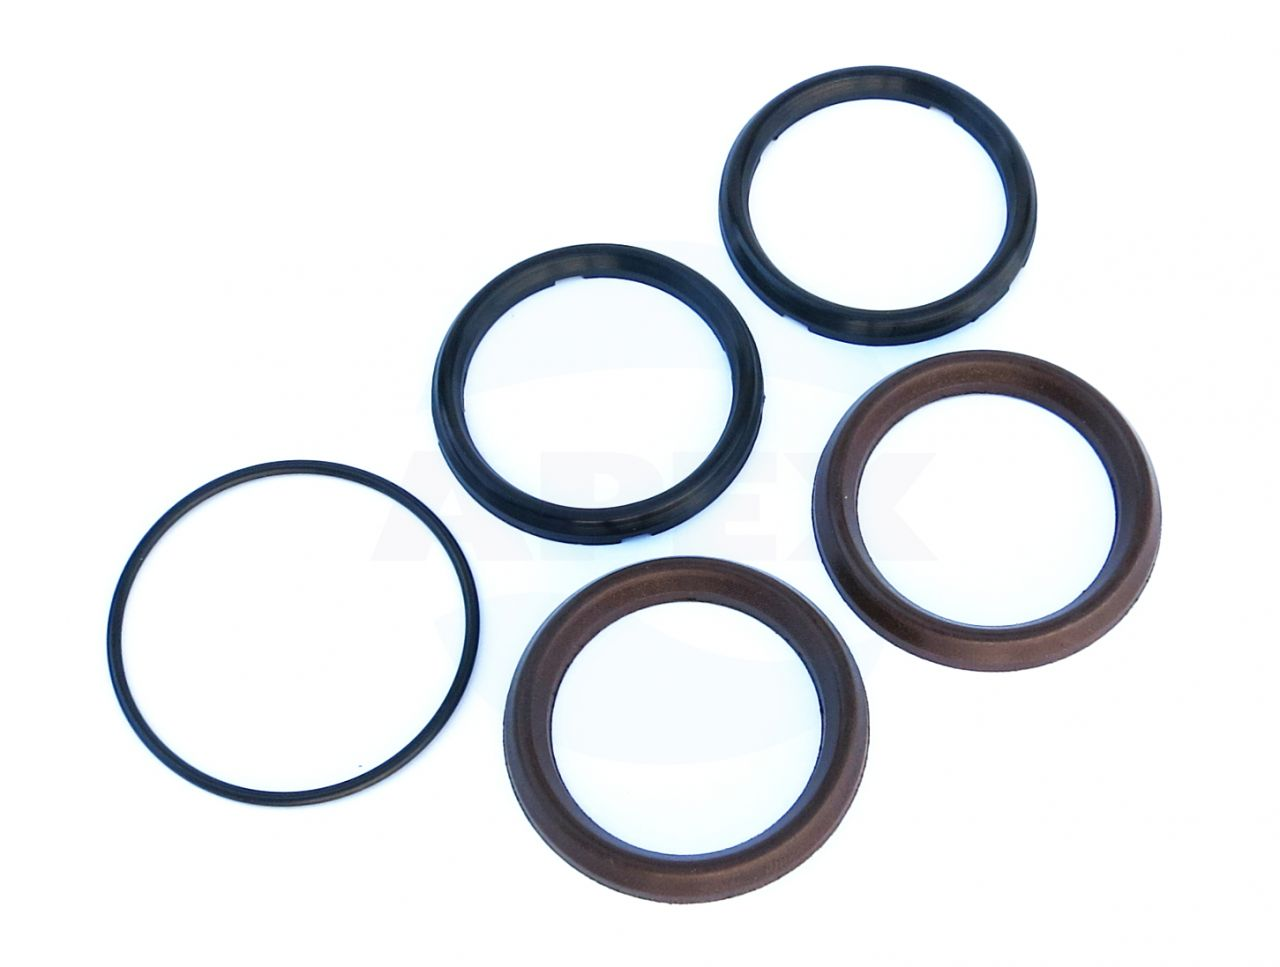 KIT U549 Garnitura piston UDOR GAMMA (6+6+3 buc)